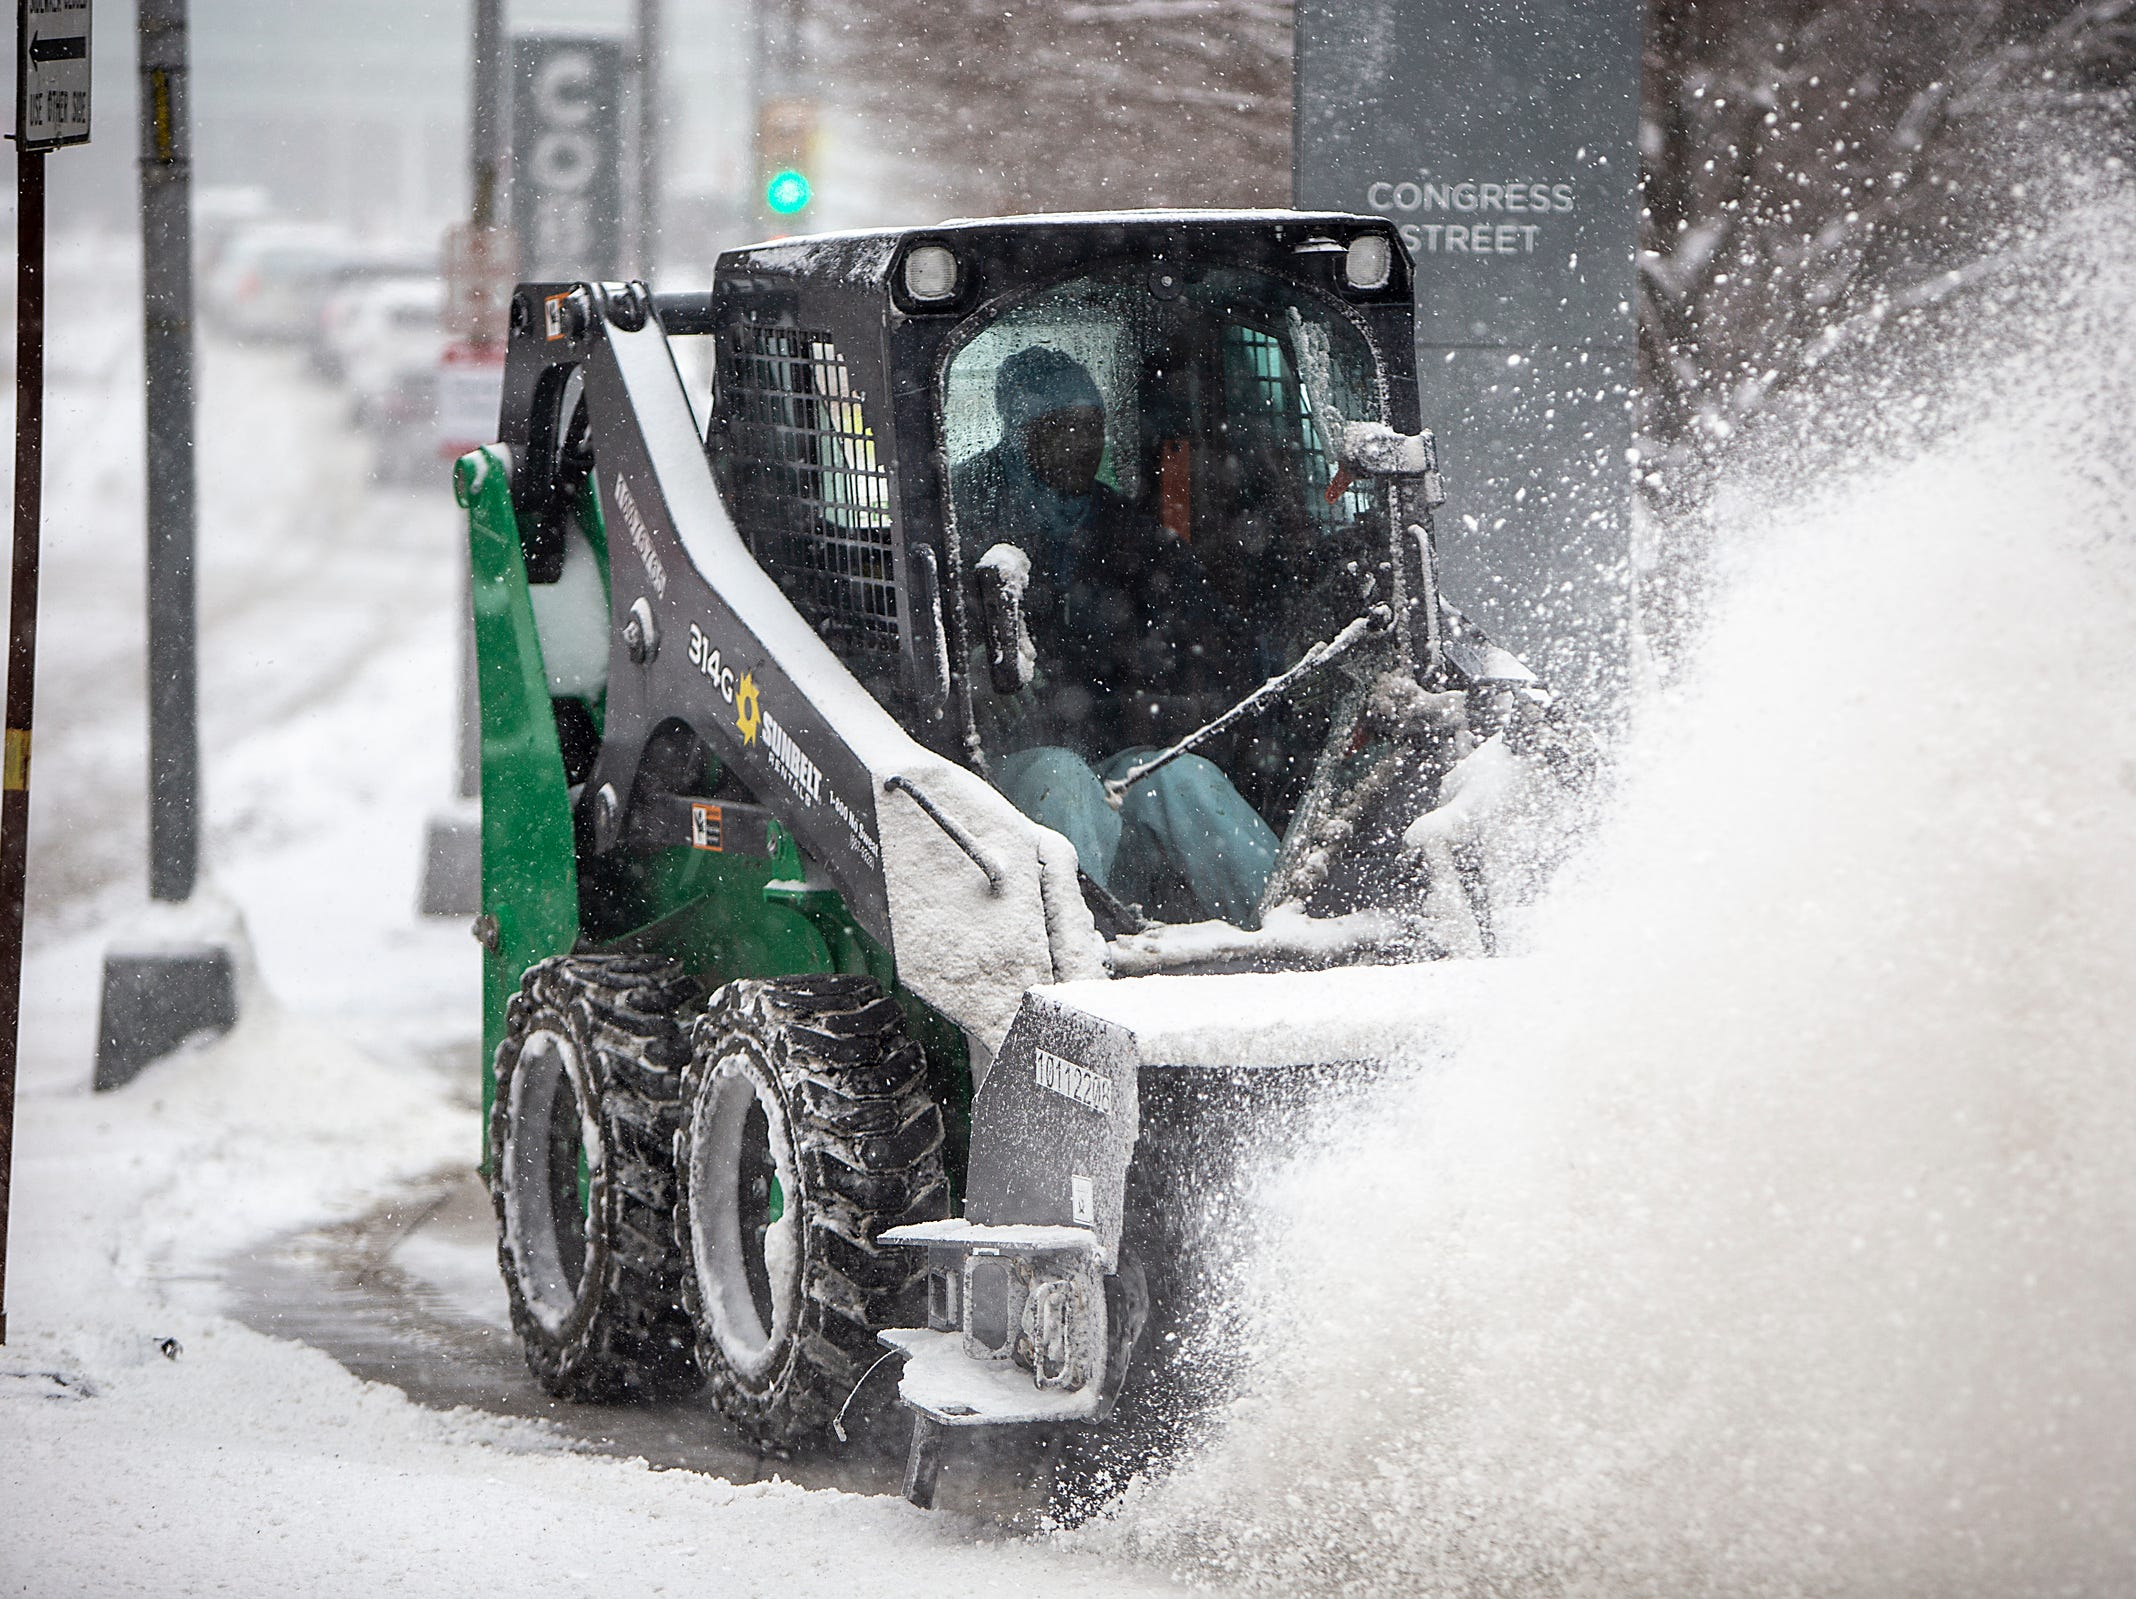 The snow is plowed from the sidewalks during the start of the North American International Auto Show at Cobo Center in downtown Detroit on Saturday, Jan. 19, 2019.